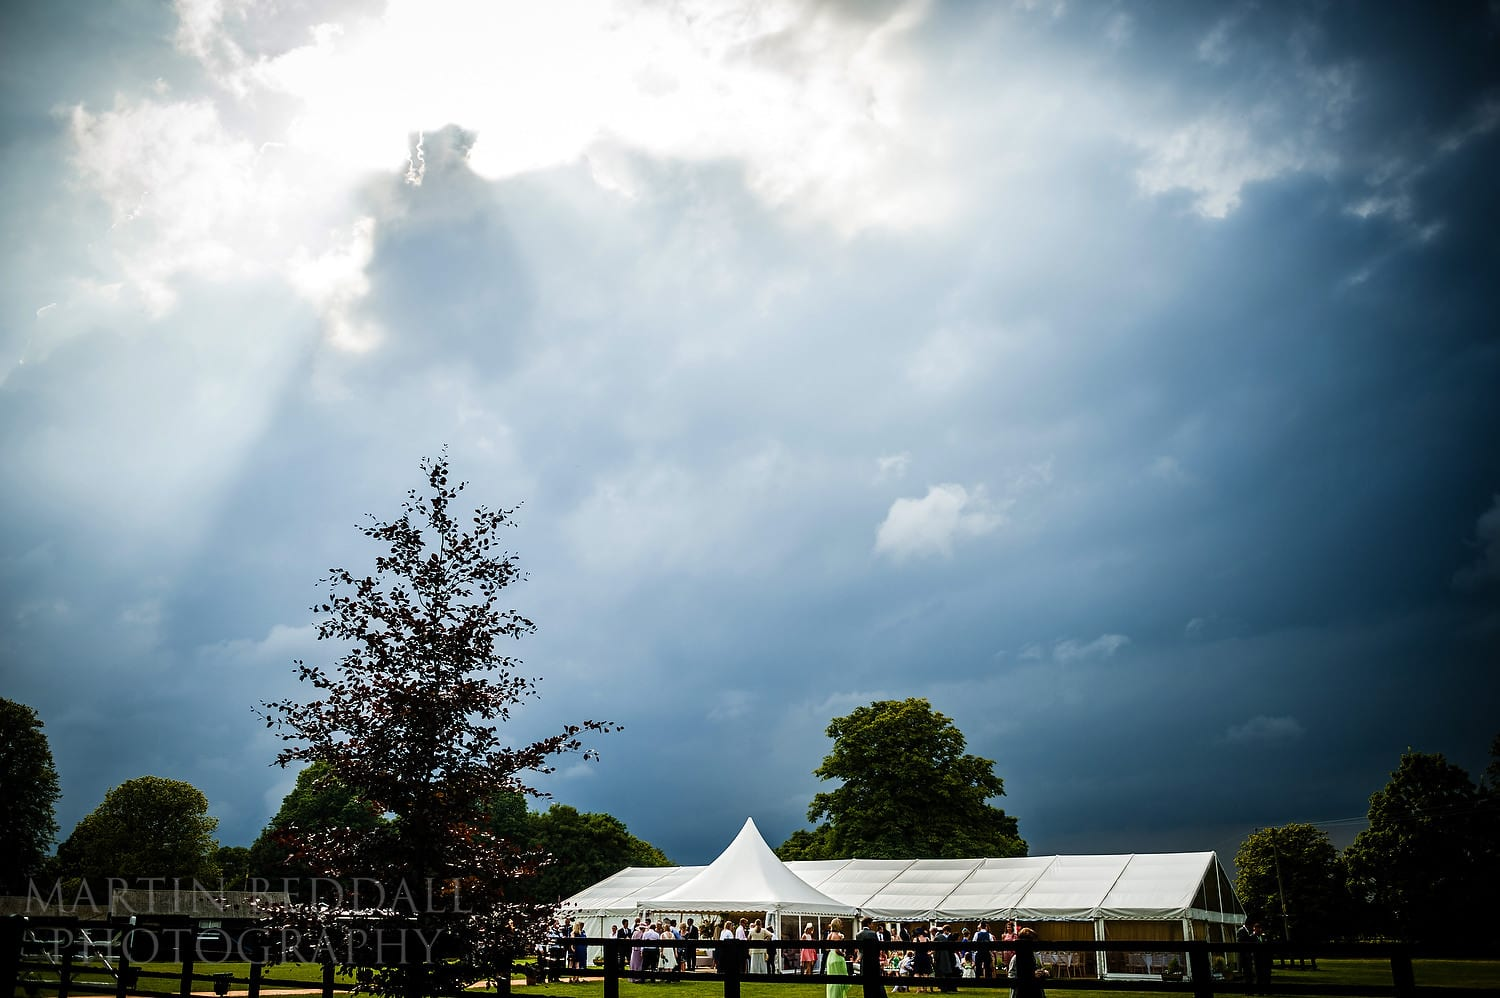 Rainclouds gather over the wedding reception